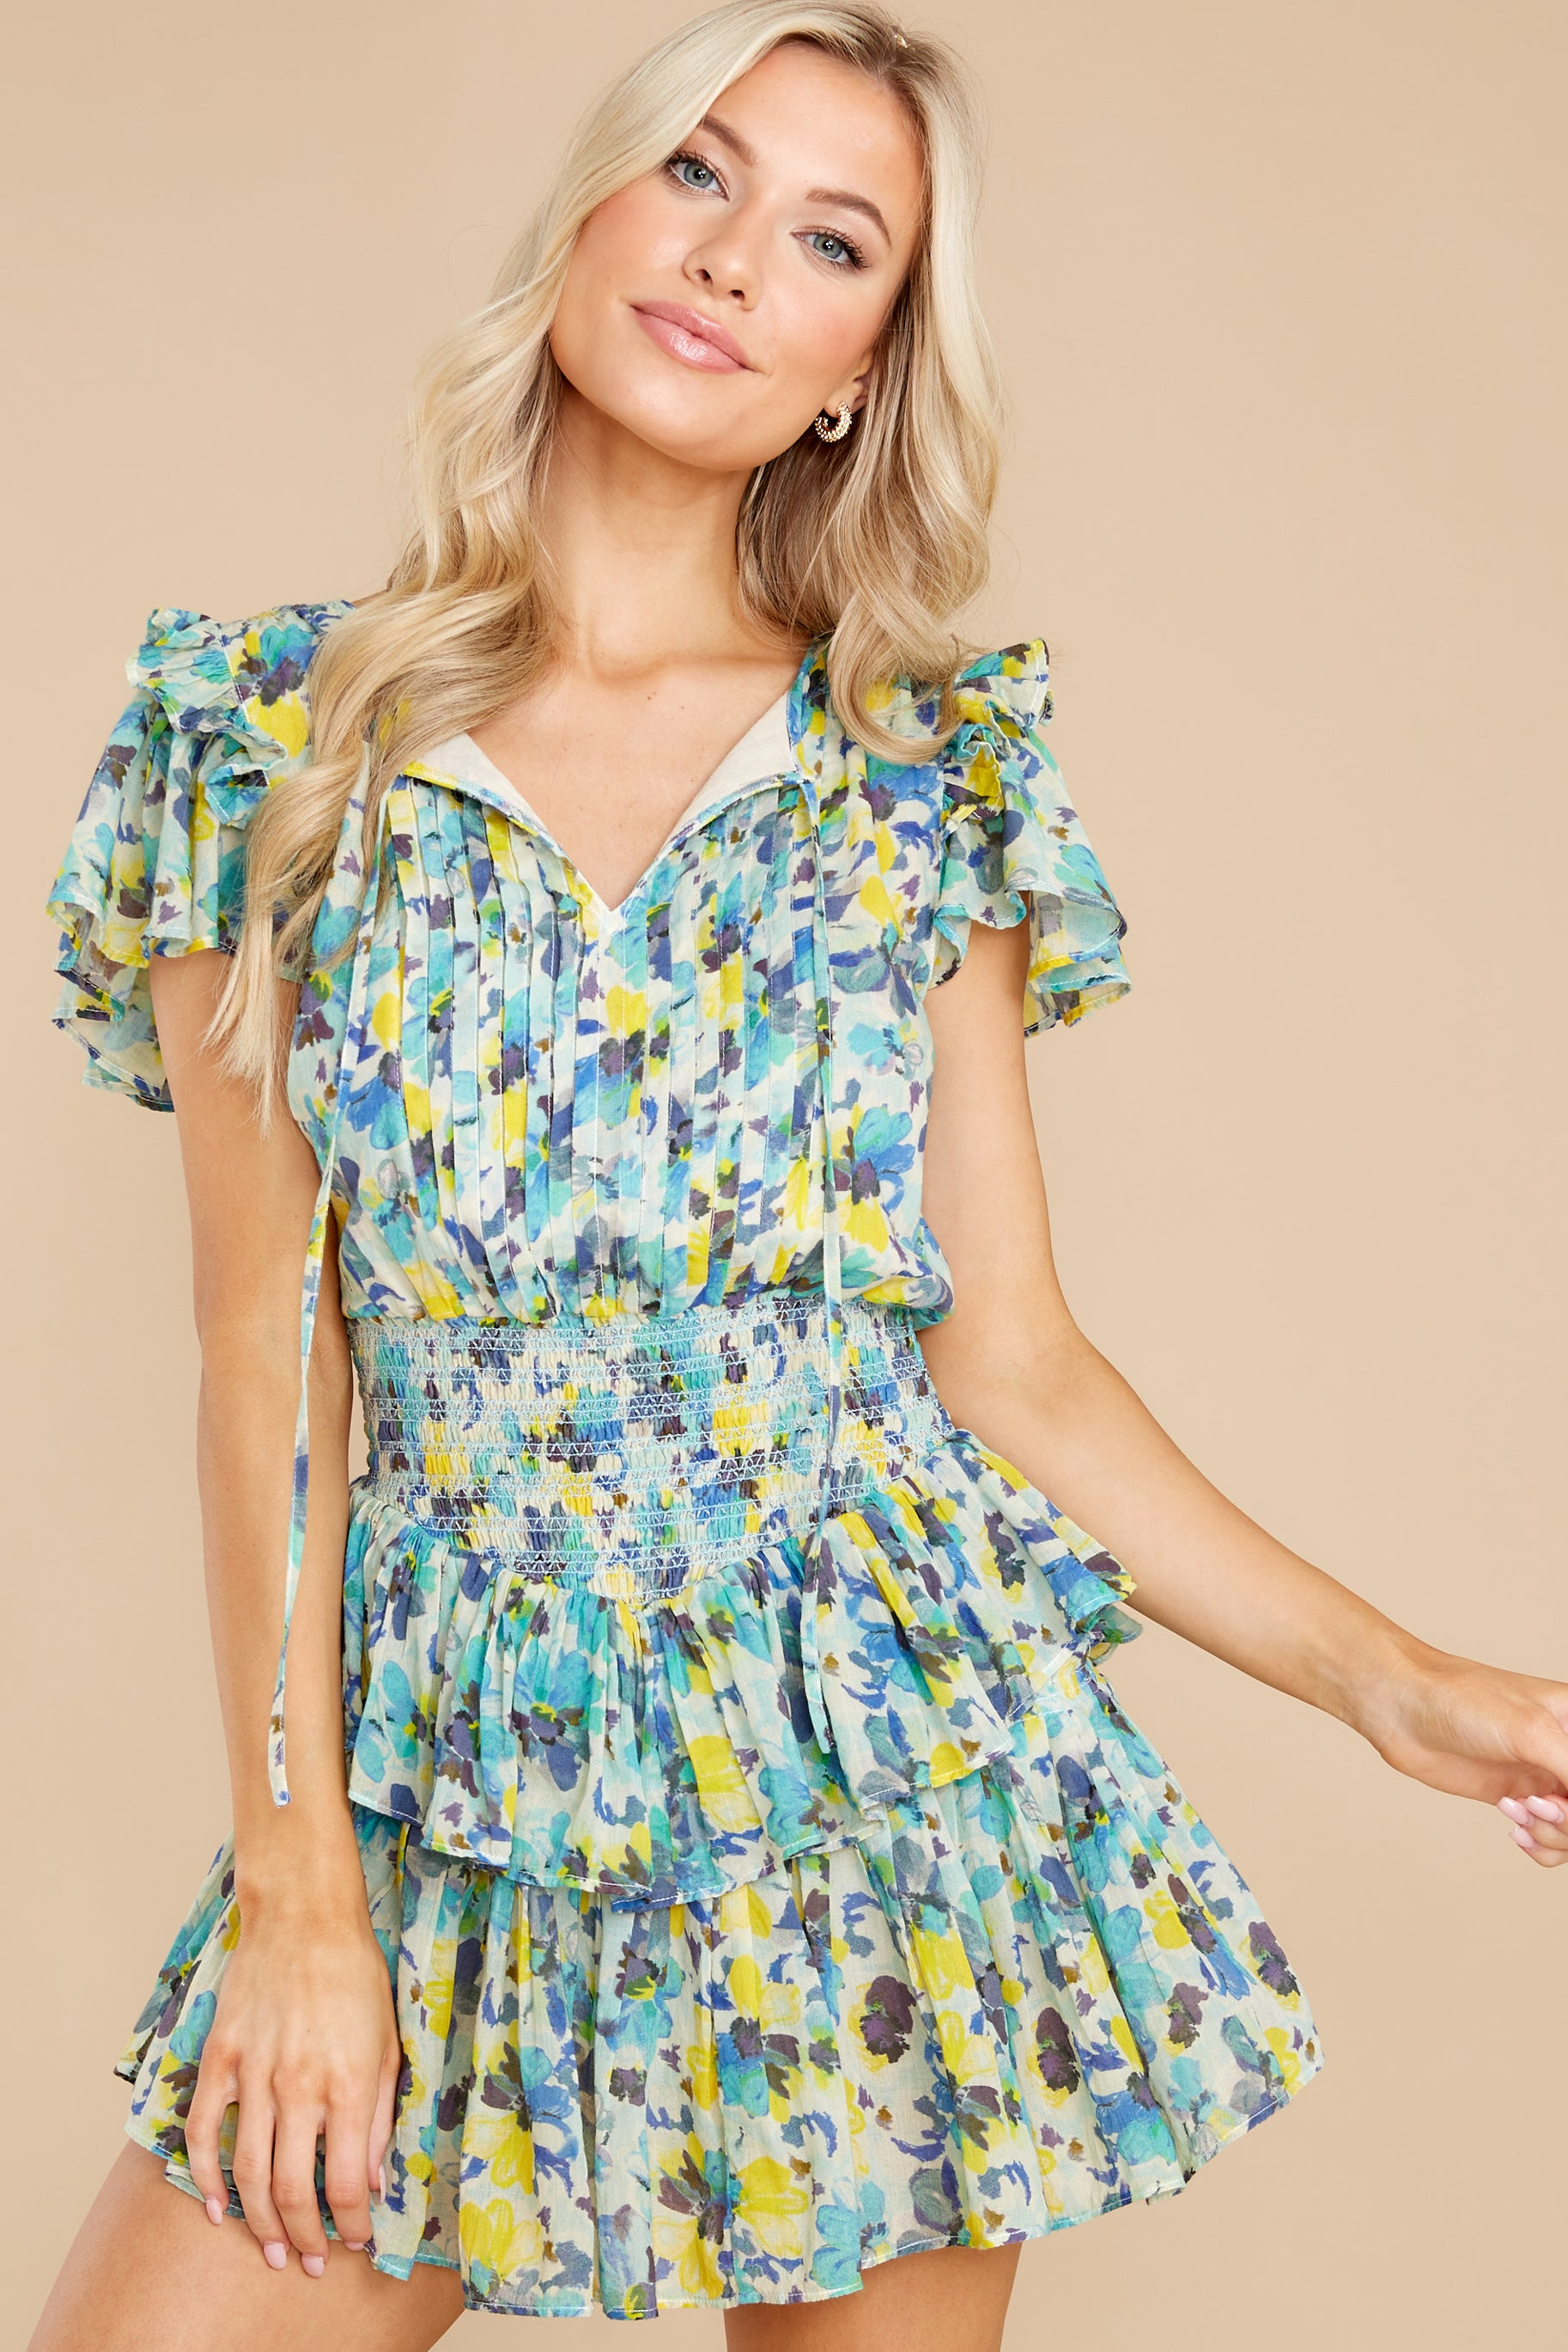 7 Audette Acai Berry Floral Print Dress at reddress.com